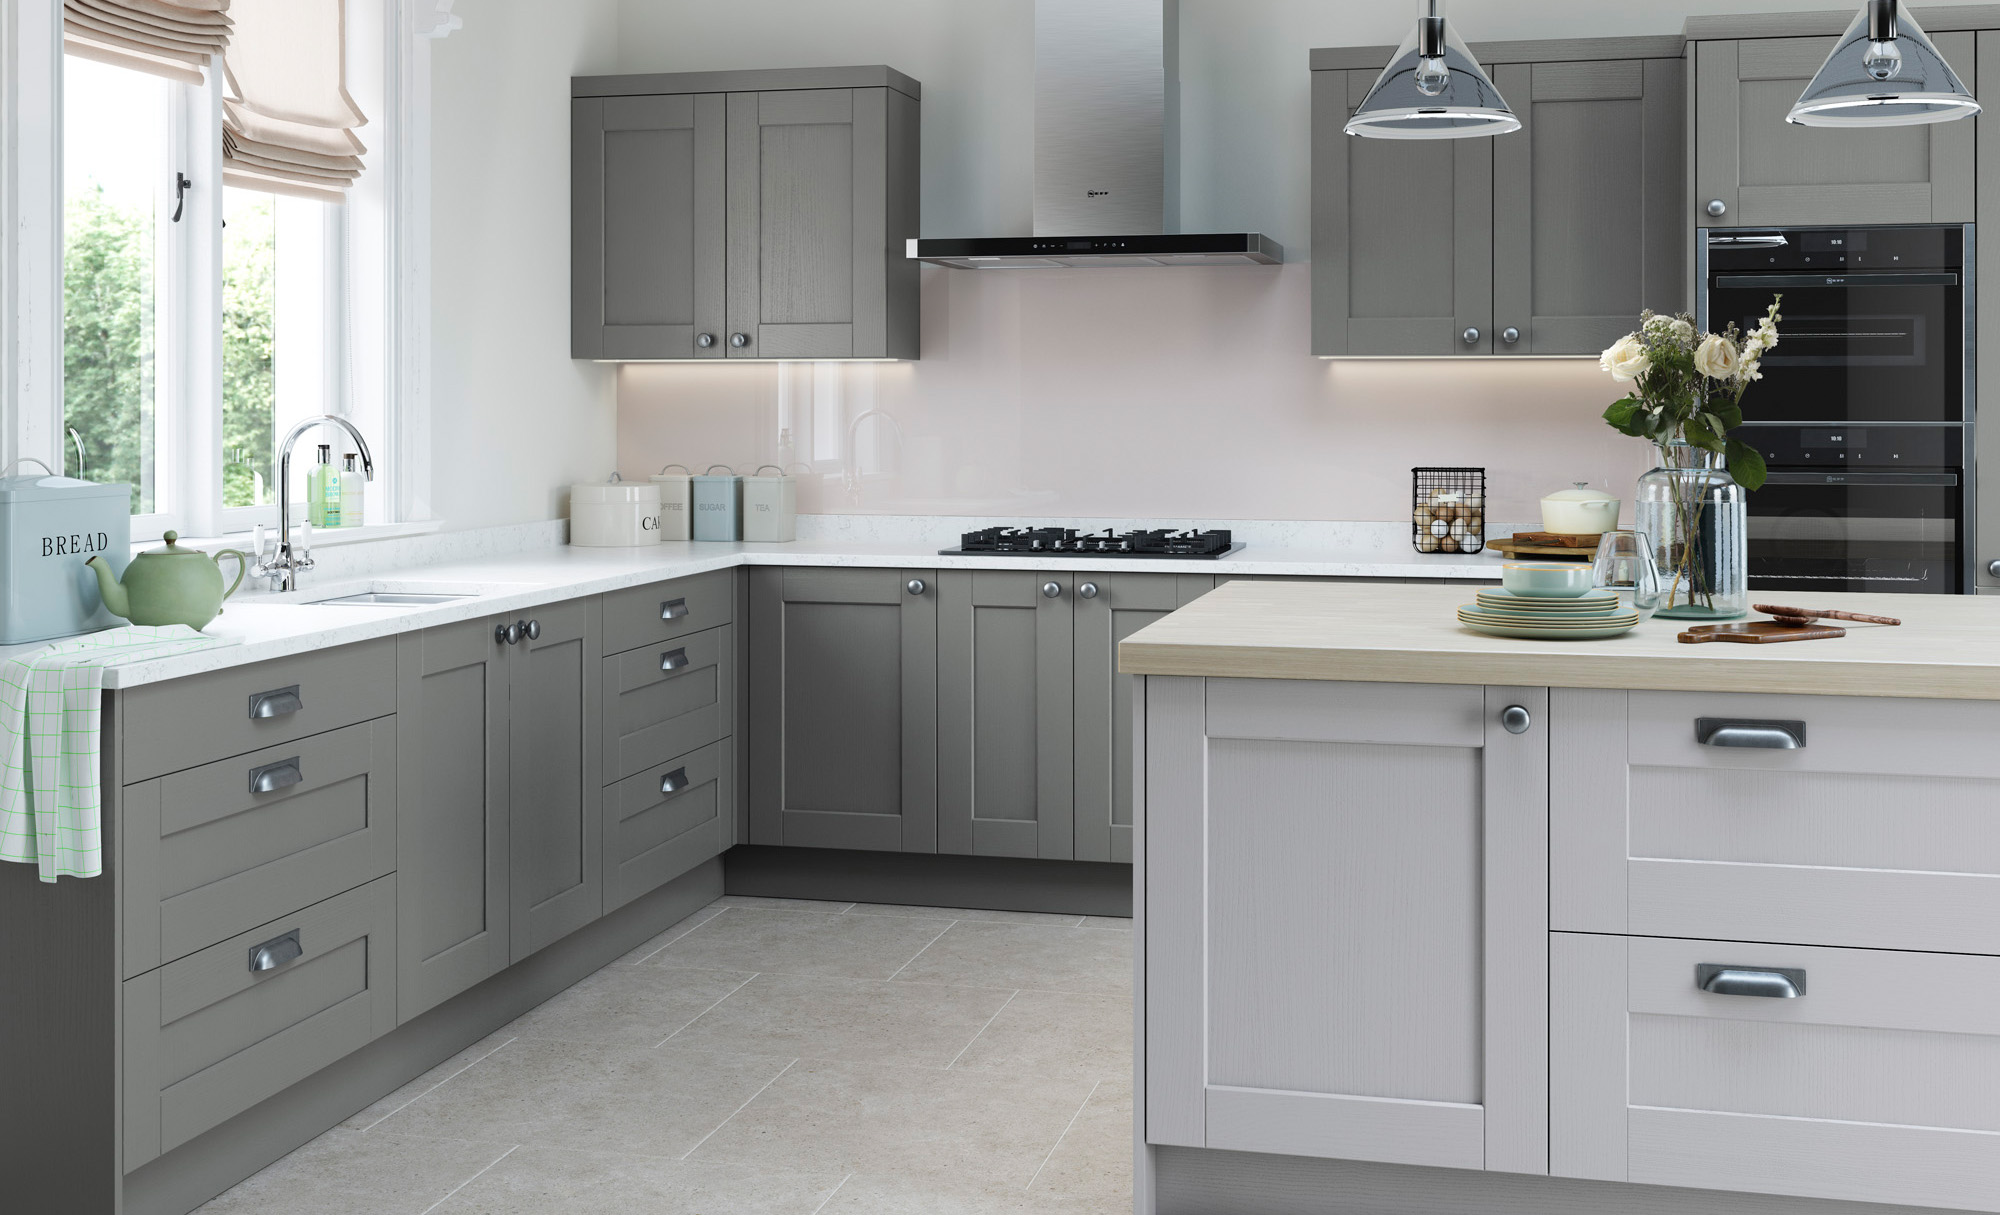 Benjamin Moore White Dove Kitchen Cabinets Shaker Kitchen Doors Kensington Classic Uform